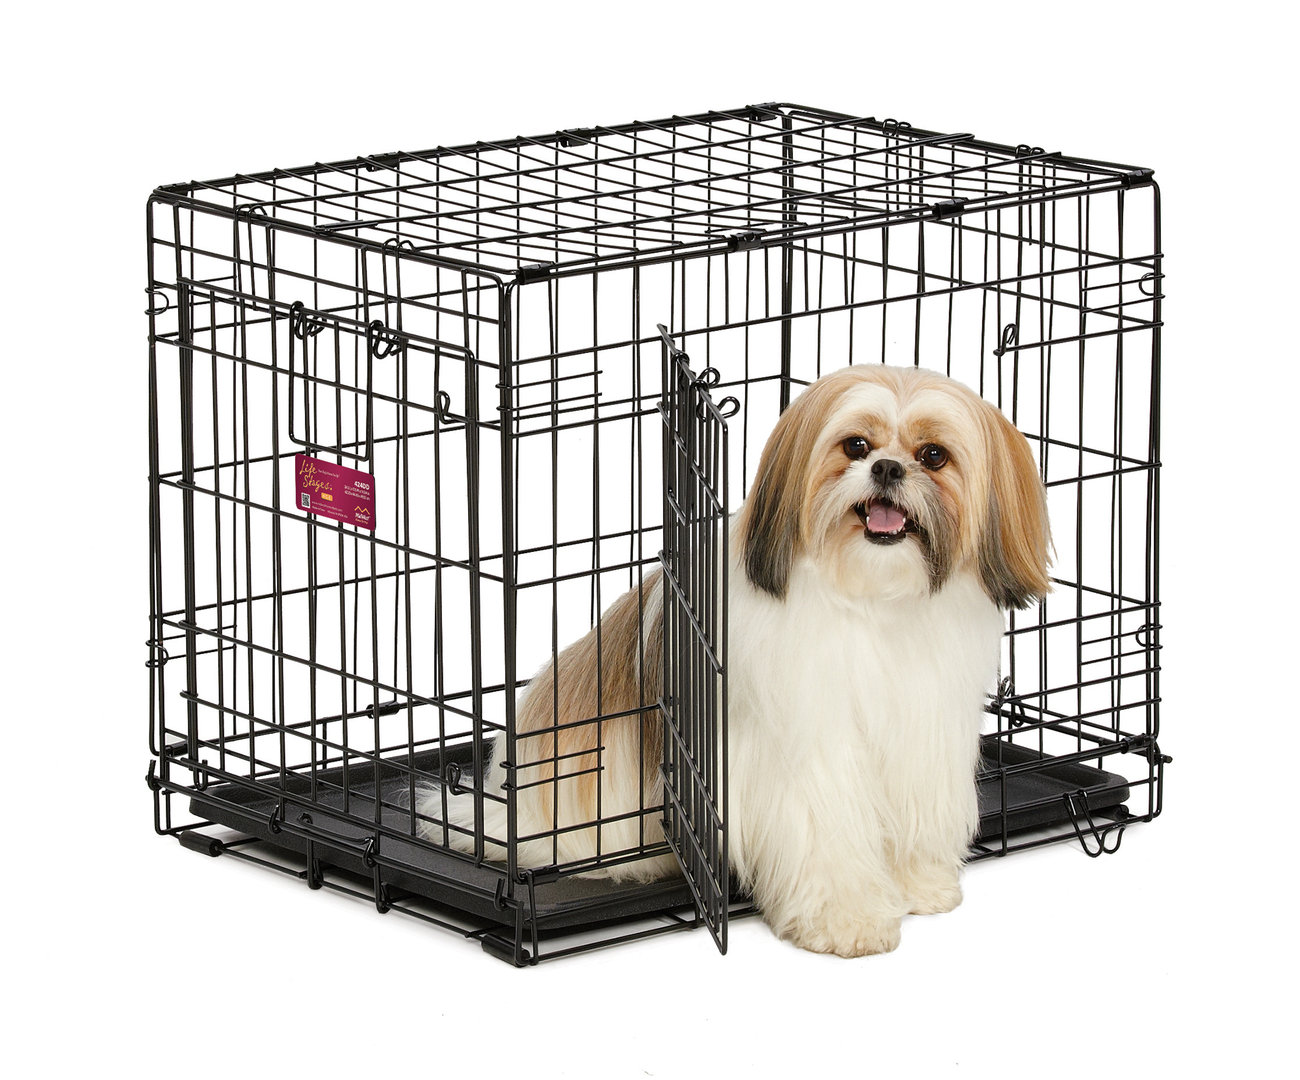 midwest dog crates midwest dog crate sizes wire dog crate - Midwest Crates